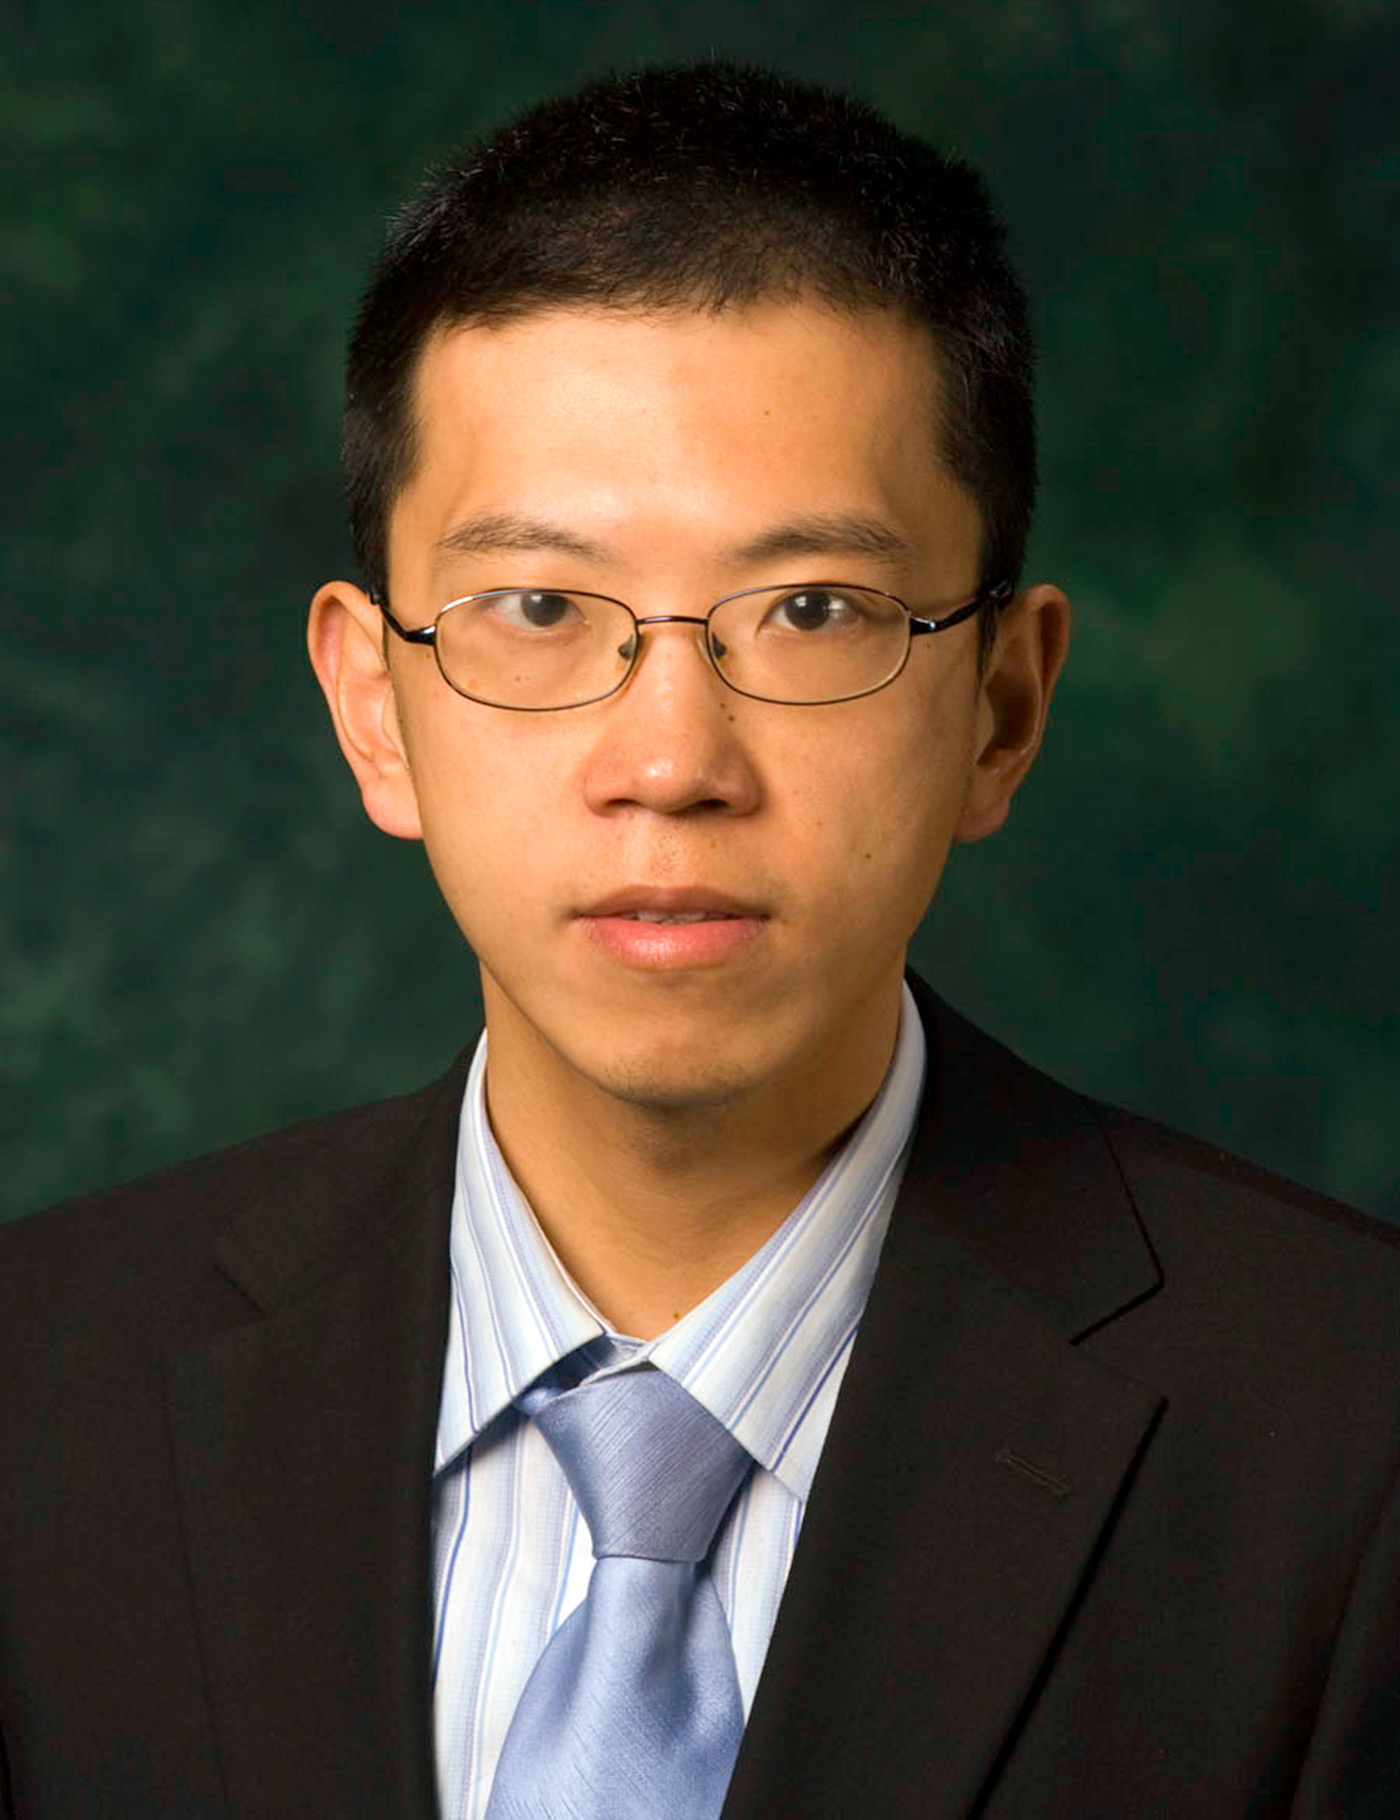 Hualiang Zhang headshot photo